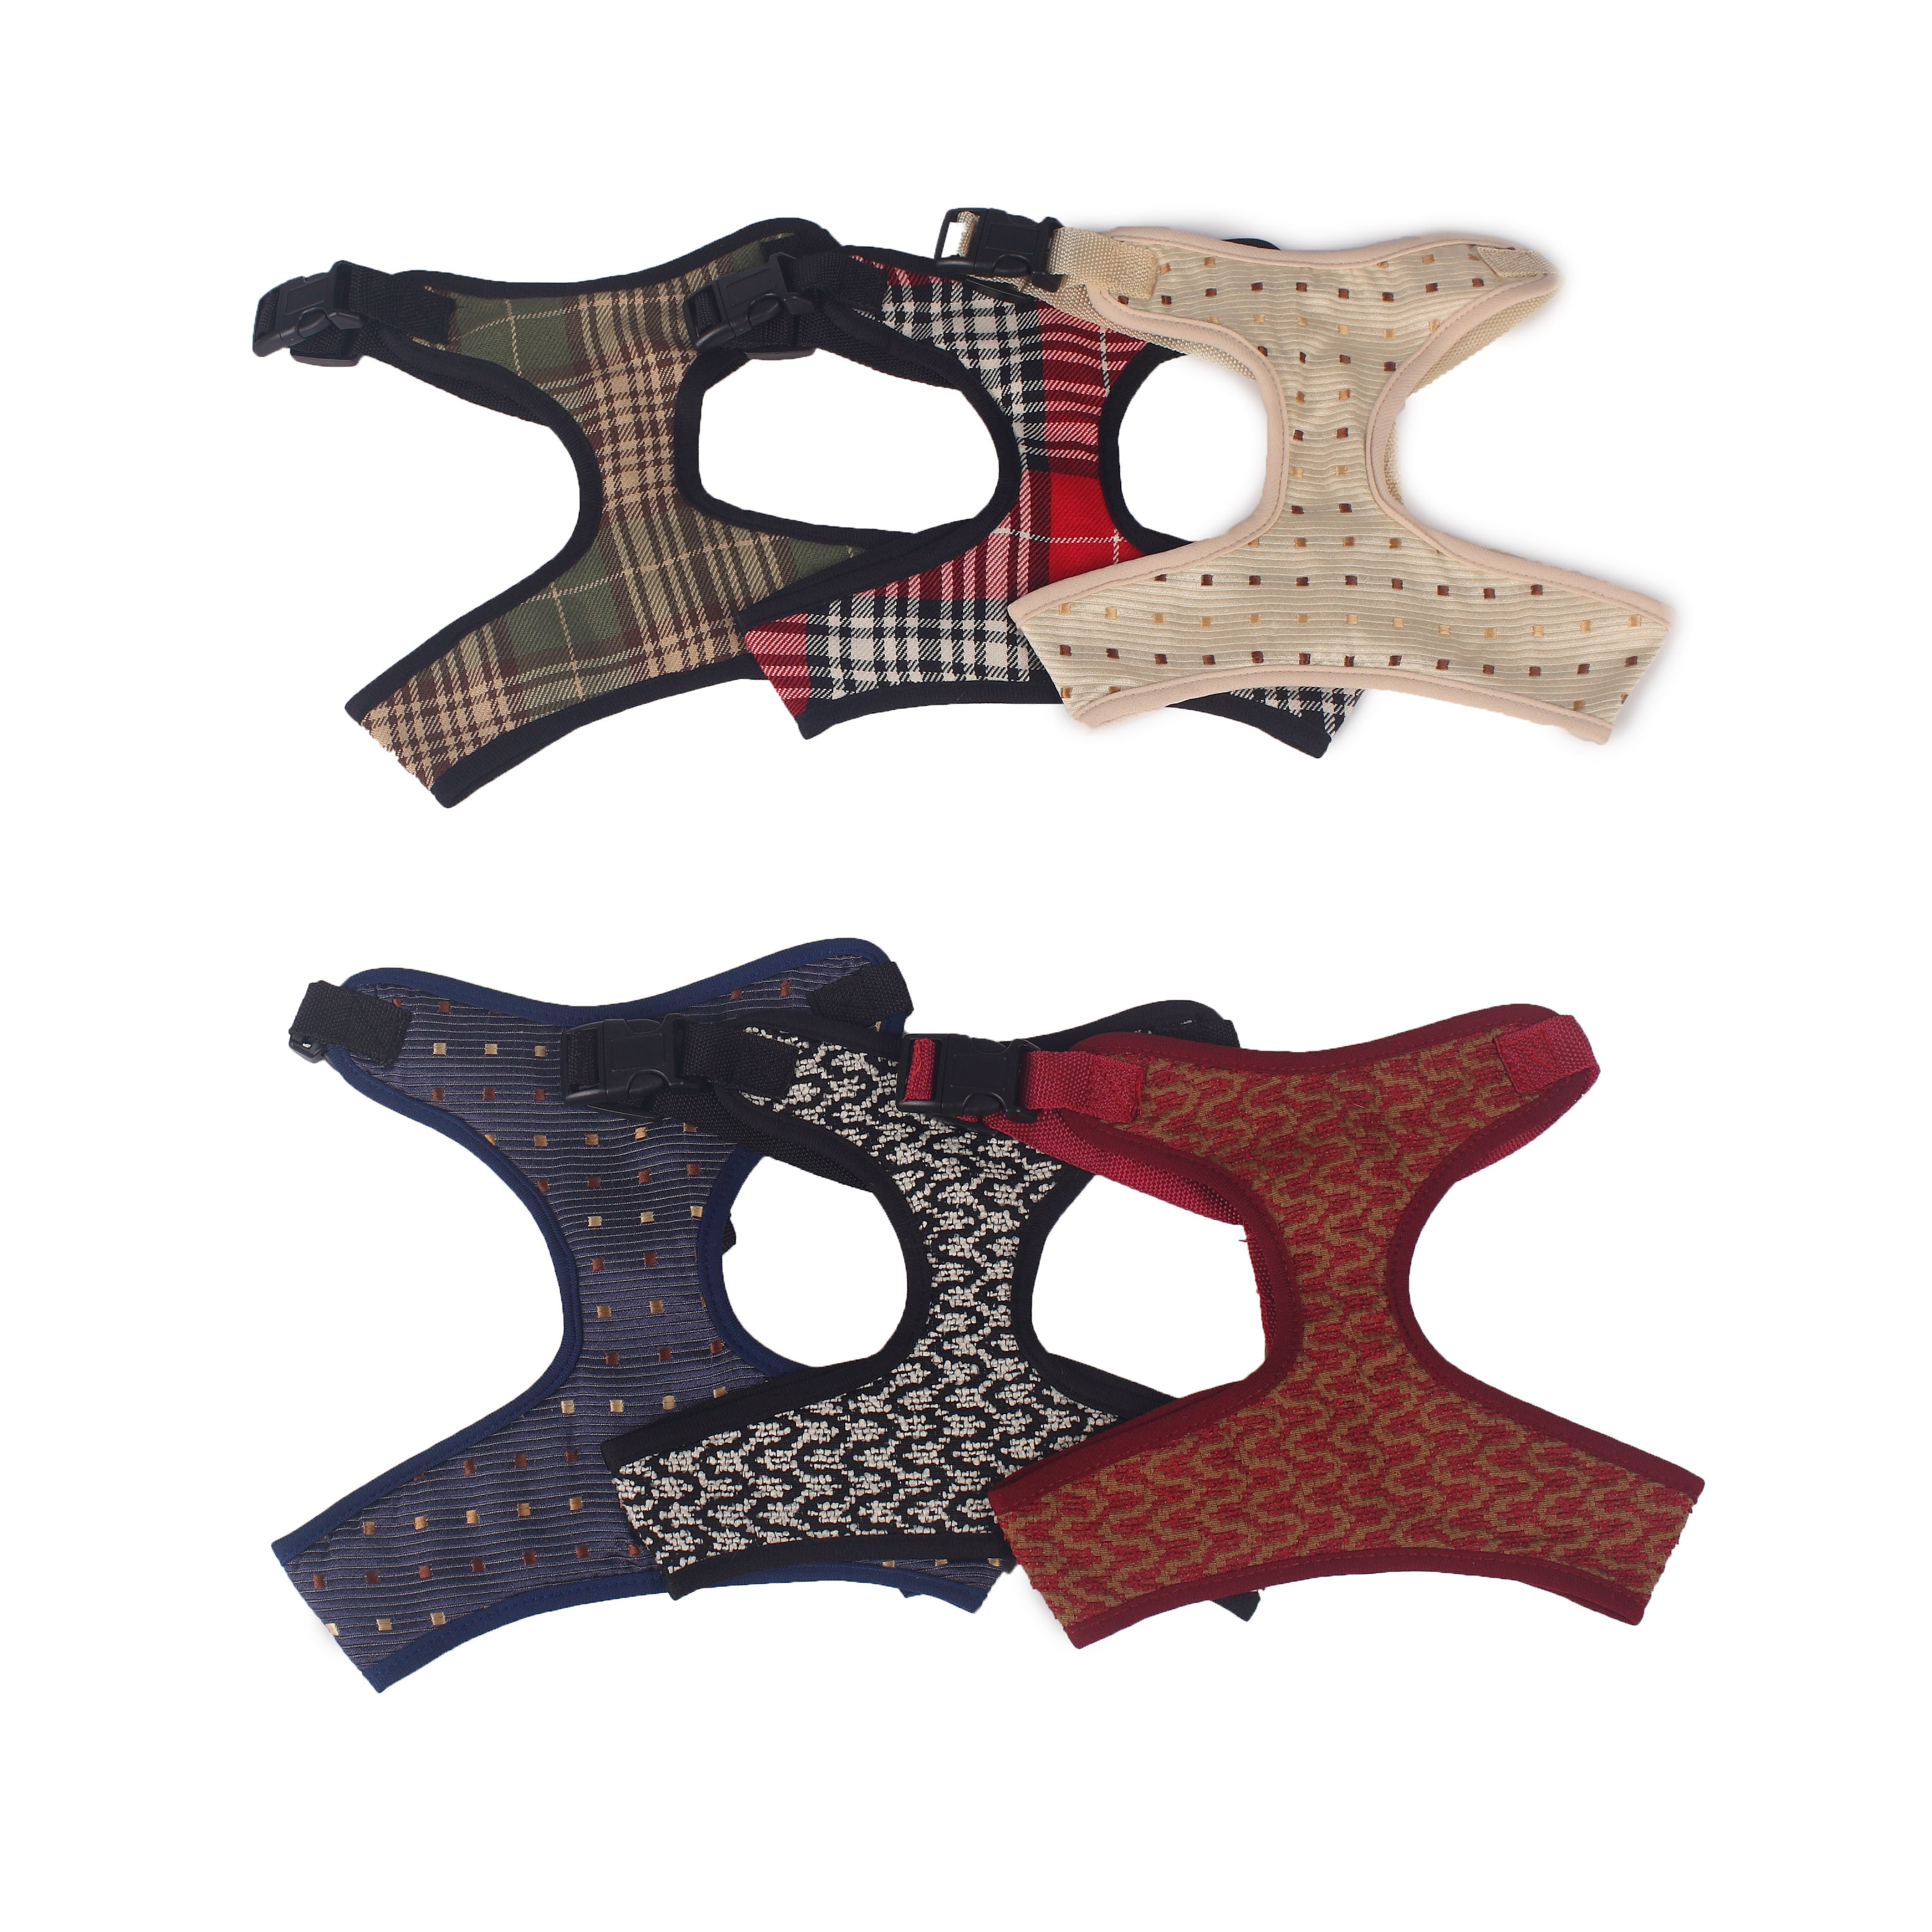 OEM Cloth Dog Harness Eco Friendly Tactical Dog Harness Simply Dog Harness